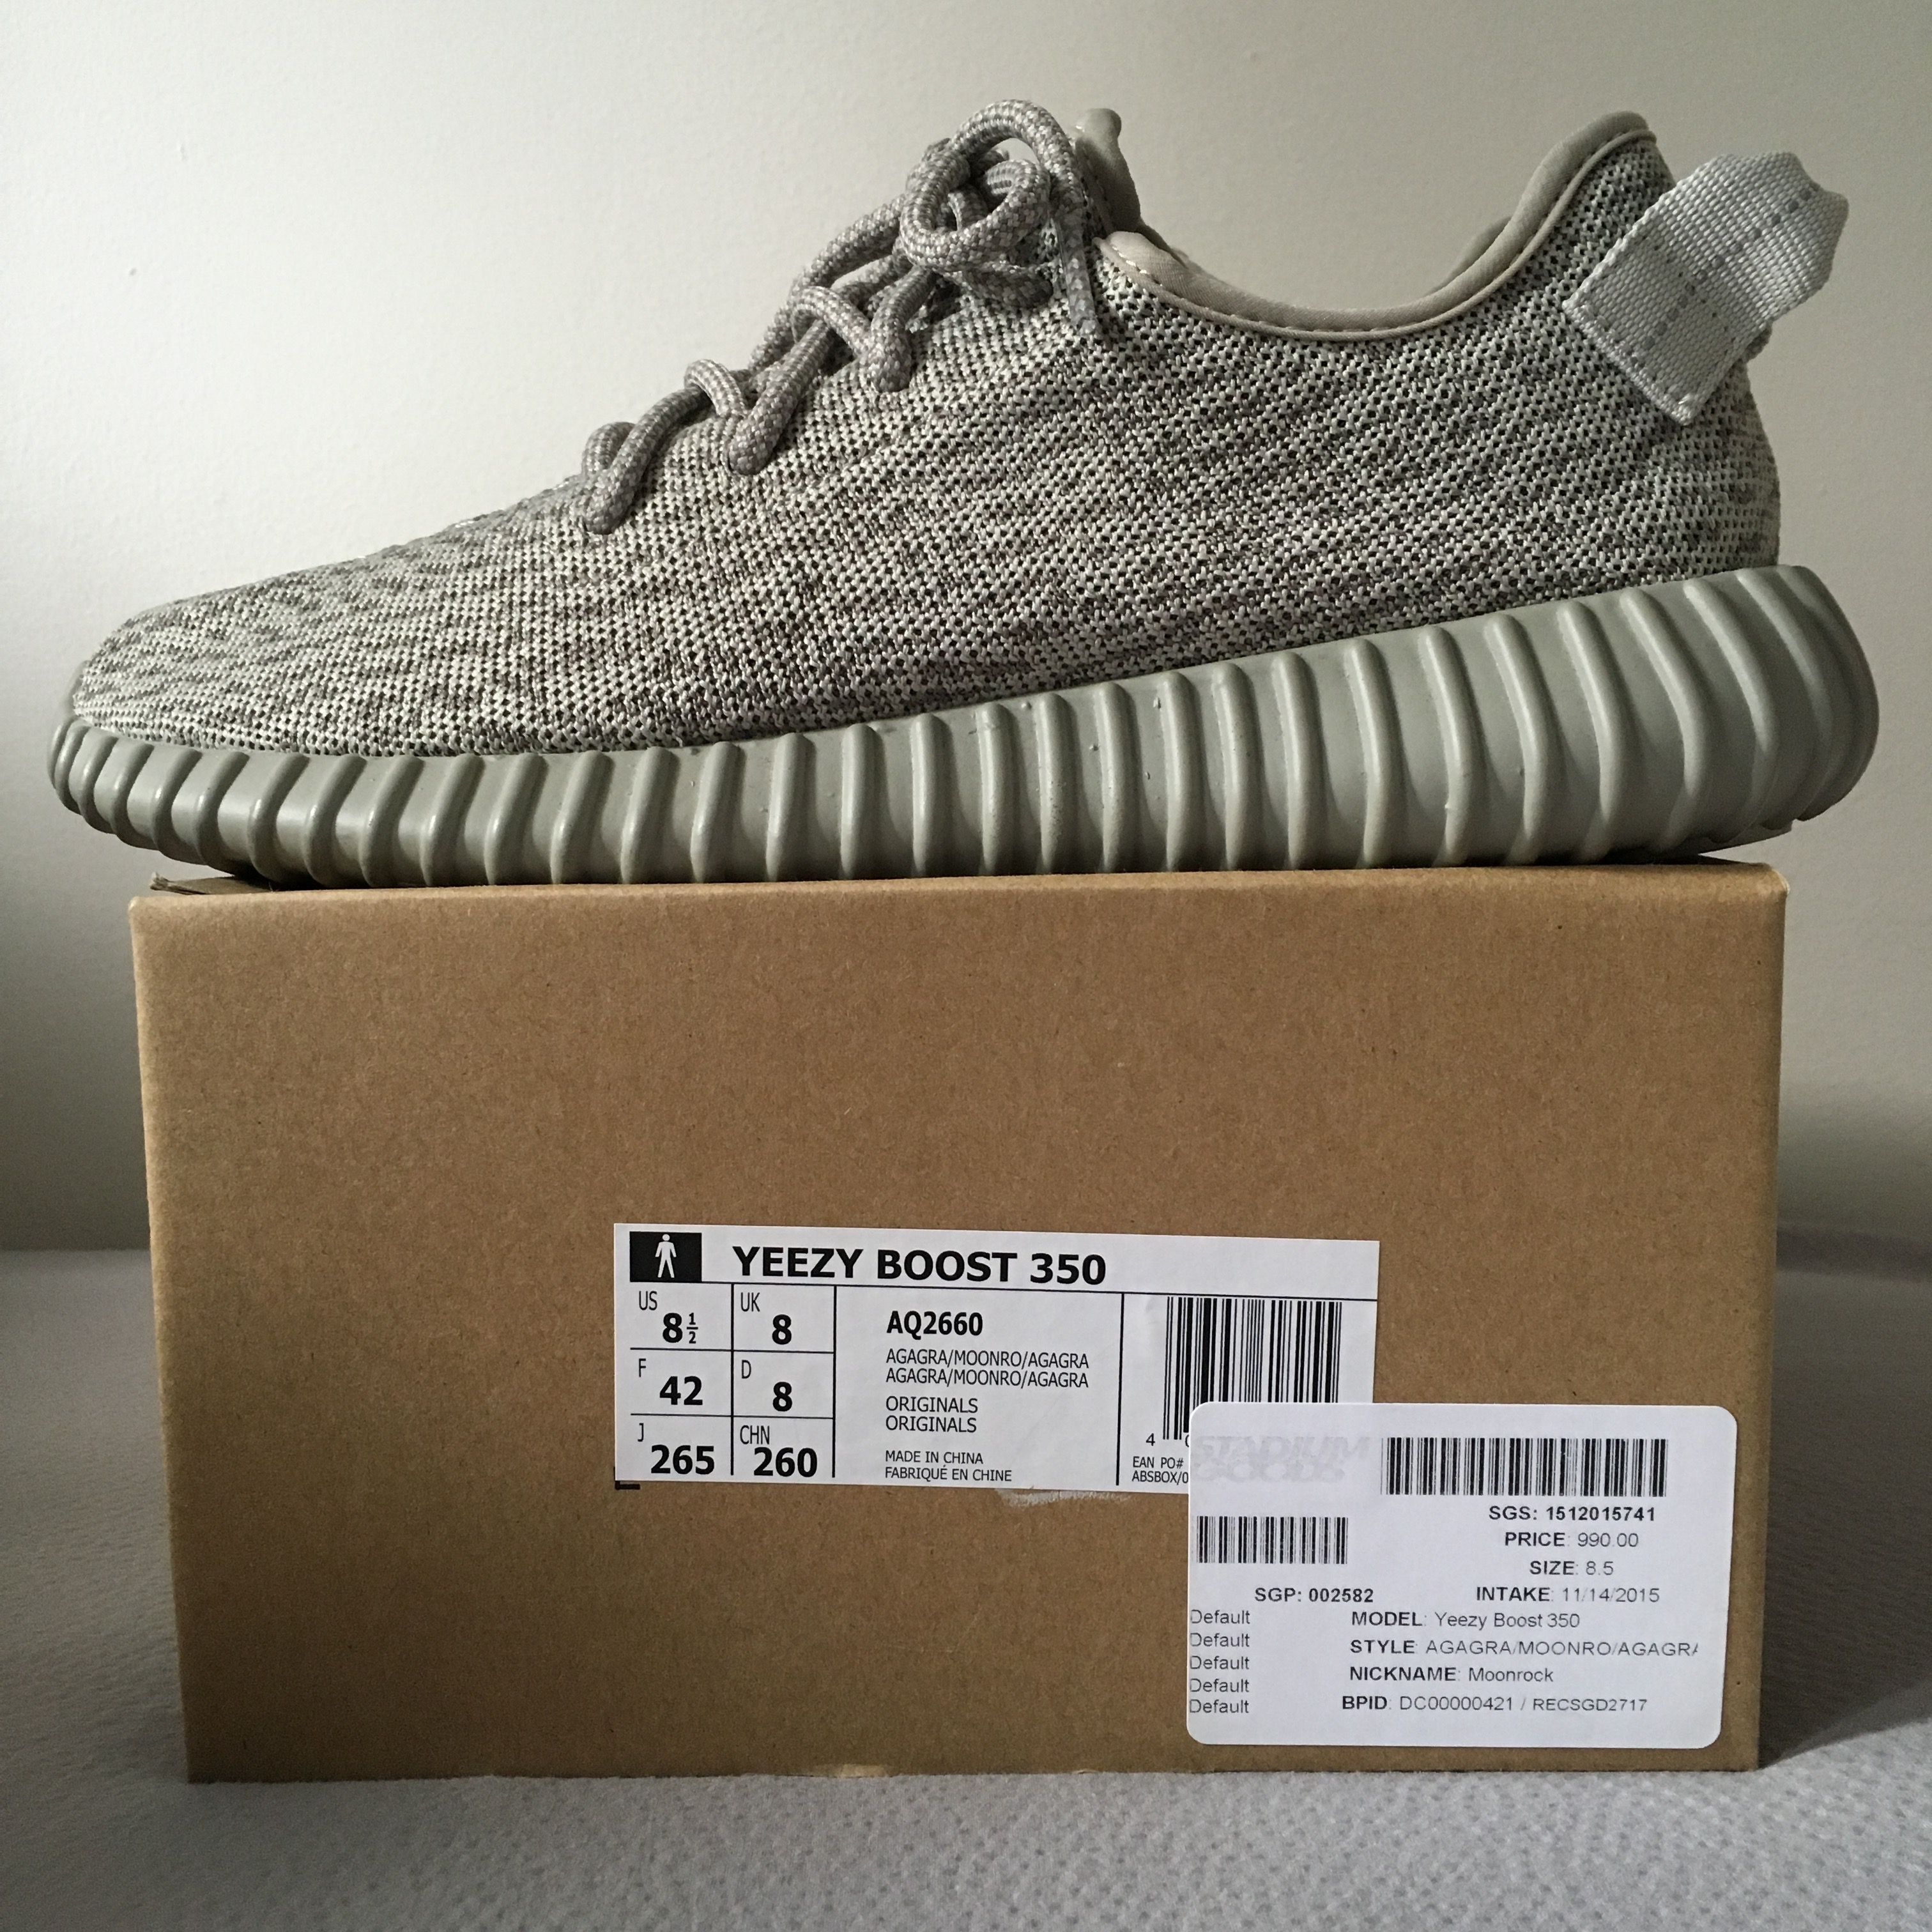 60c5f9f58a4a9 Adidas Kanye West Yeezy Boost 350 Moonrock Size 8.5 - for Sale - Grailed